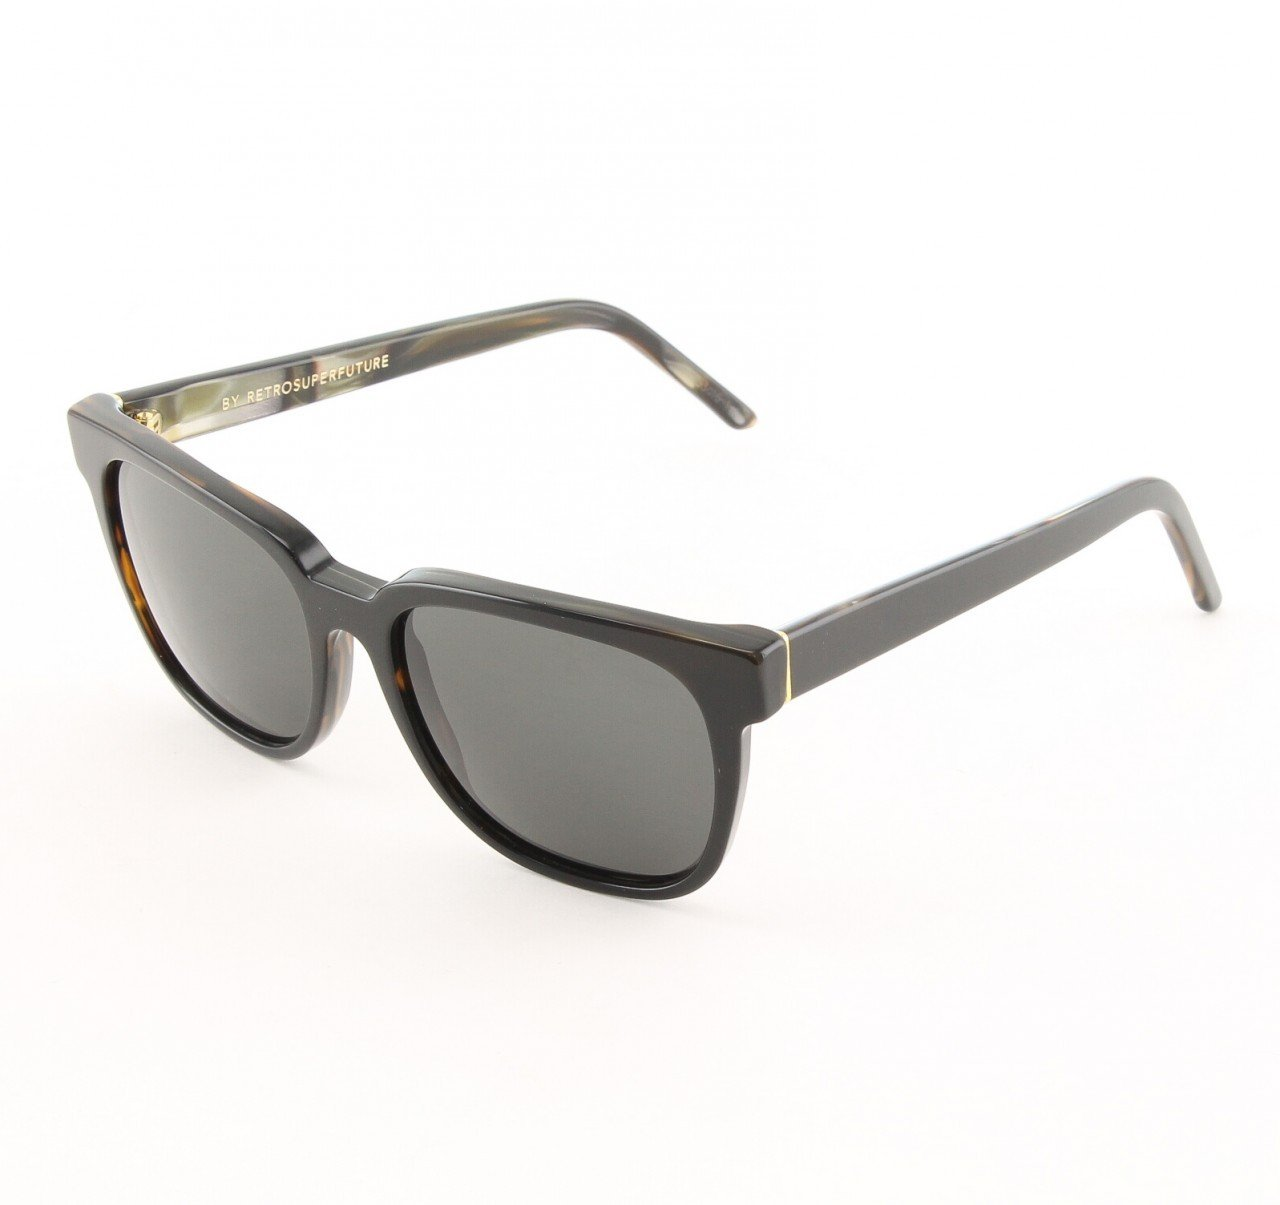 Super People 405 Sunglasses Black and Shell with Black Zeiss Lenses by RETROSUPERFUTURE